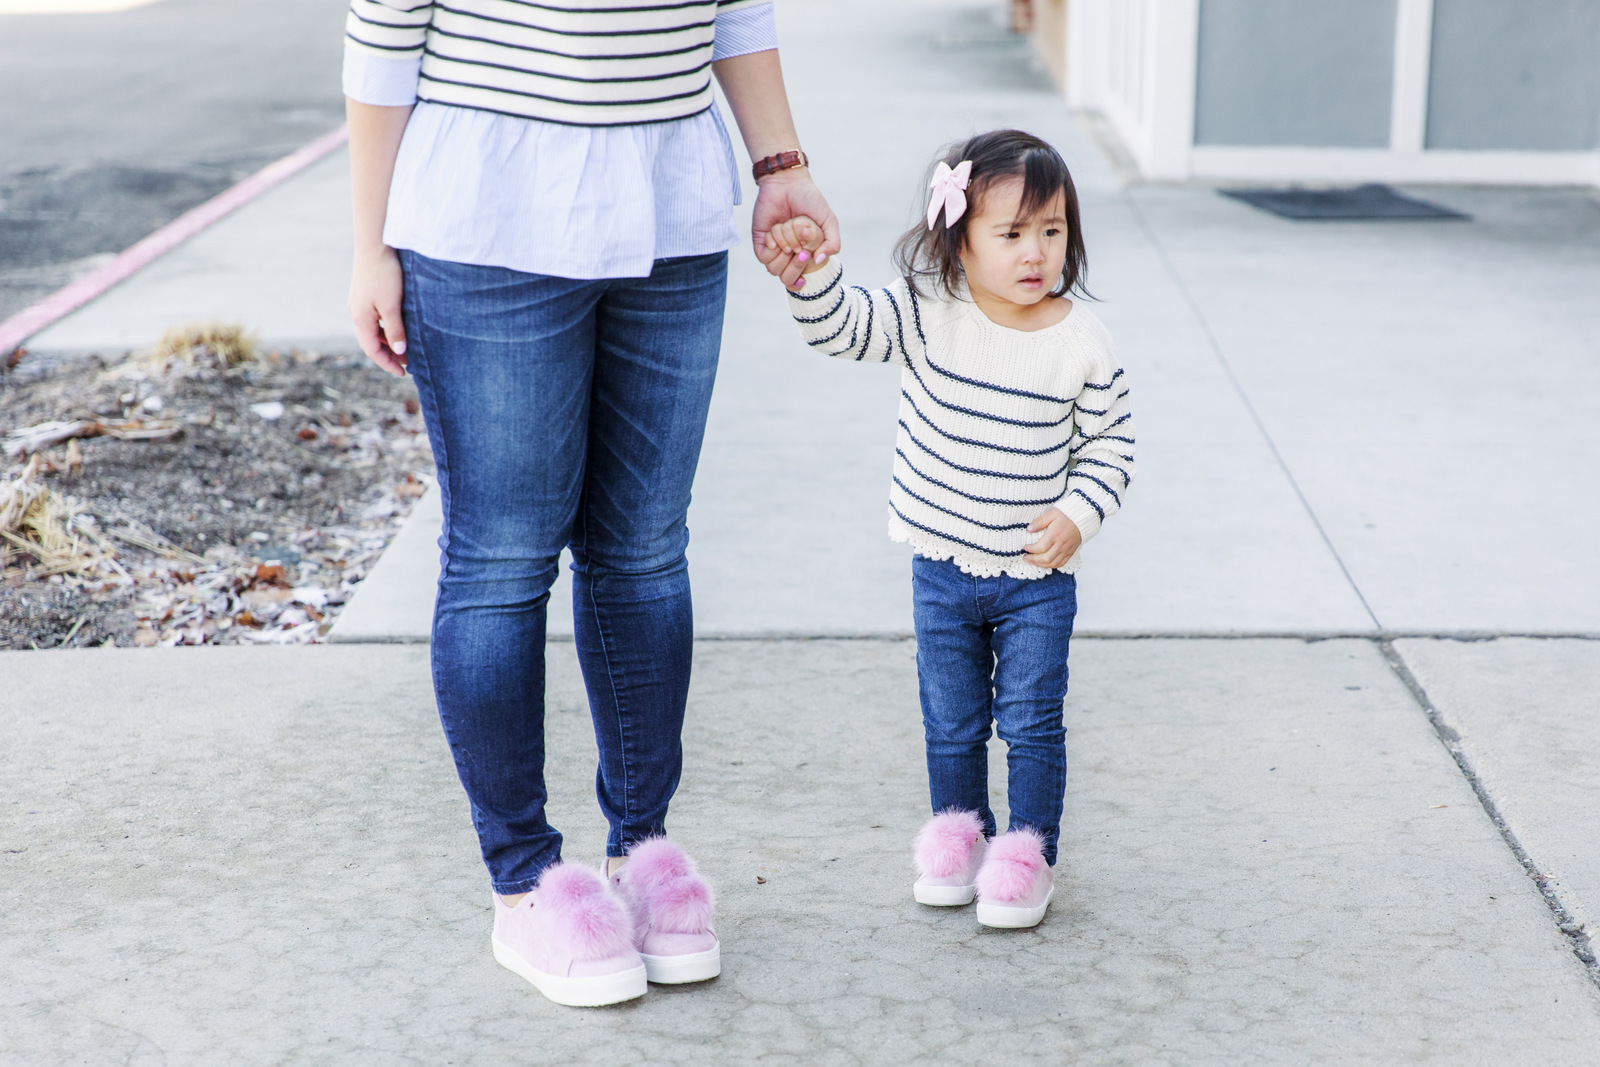 43bc4afc412c9 Mommy and me outfits  striped shirts and pom pom shoes Pin this image on  Pinterest